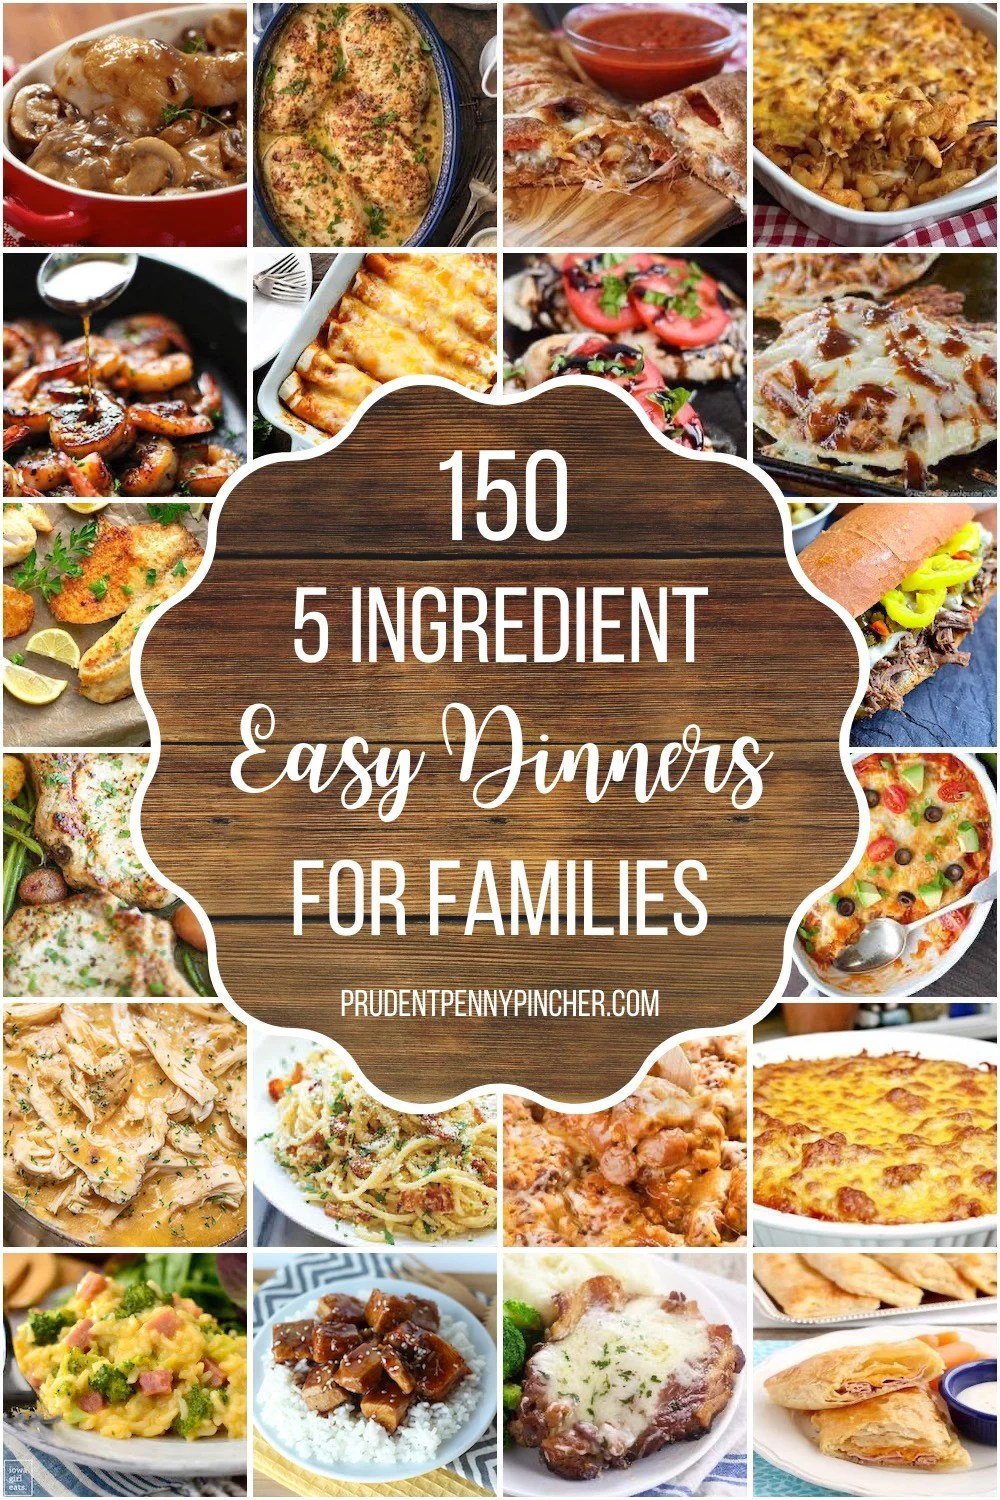 5 Ingredient Easy Dinner Recipes for Families